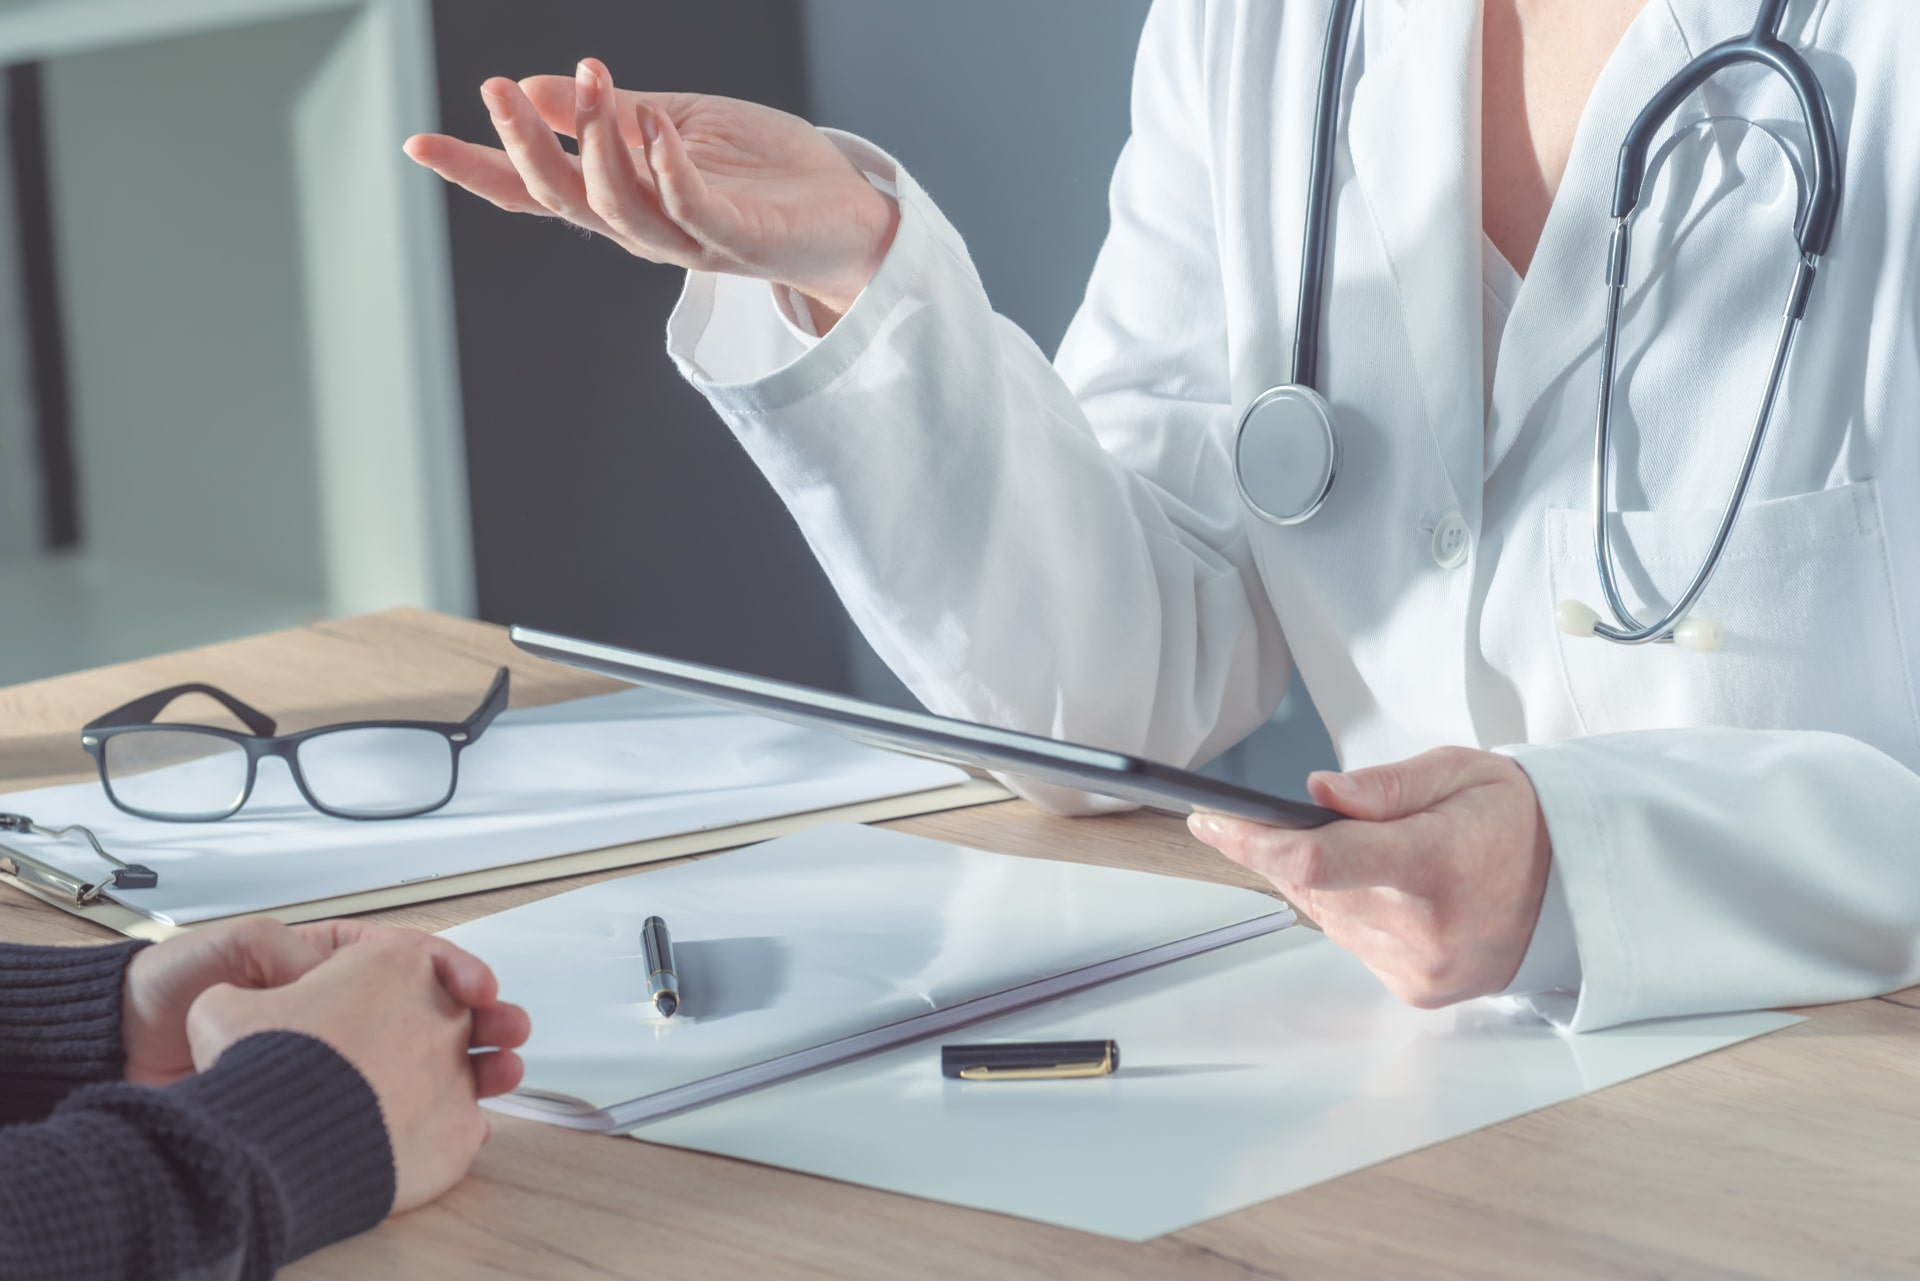 pain management centers in south jersey